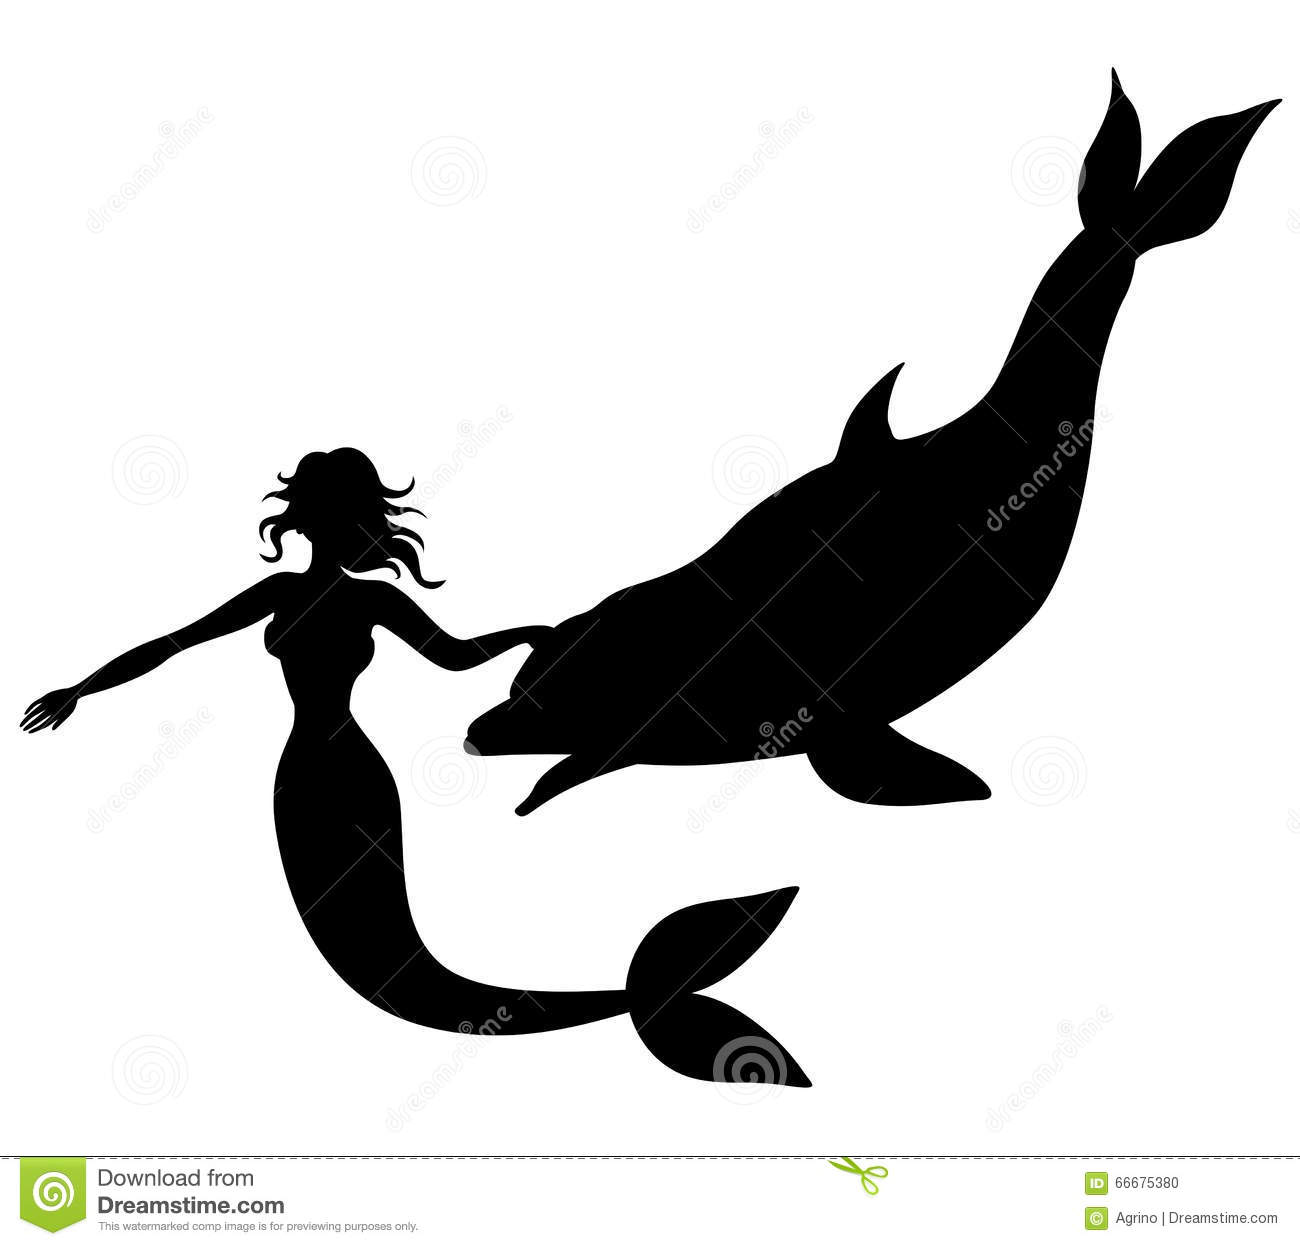 Vector illustrations of silhouette of mermaid swimming with dolphin.